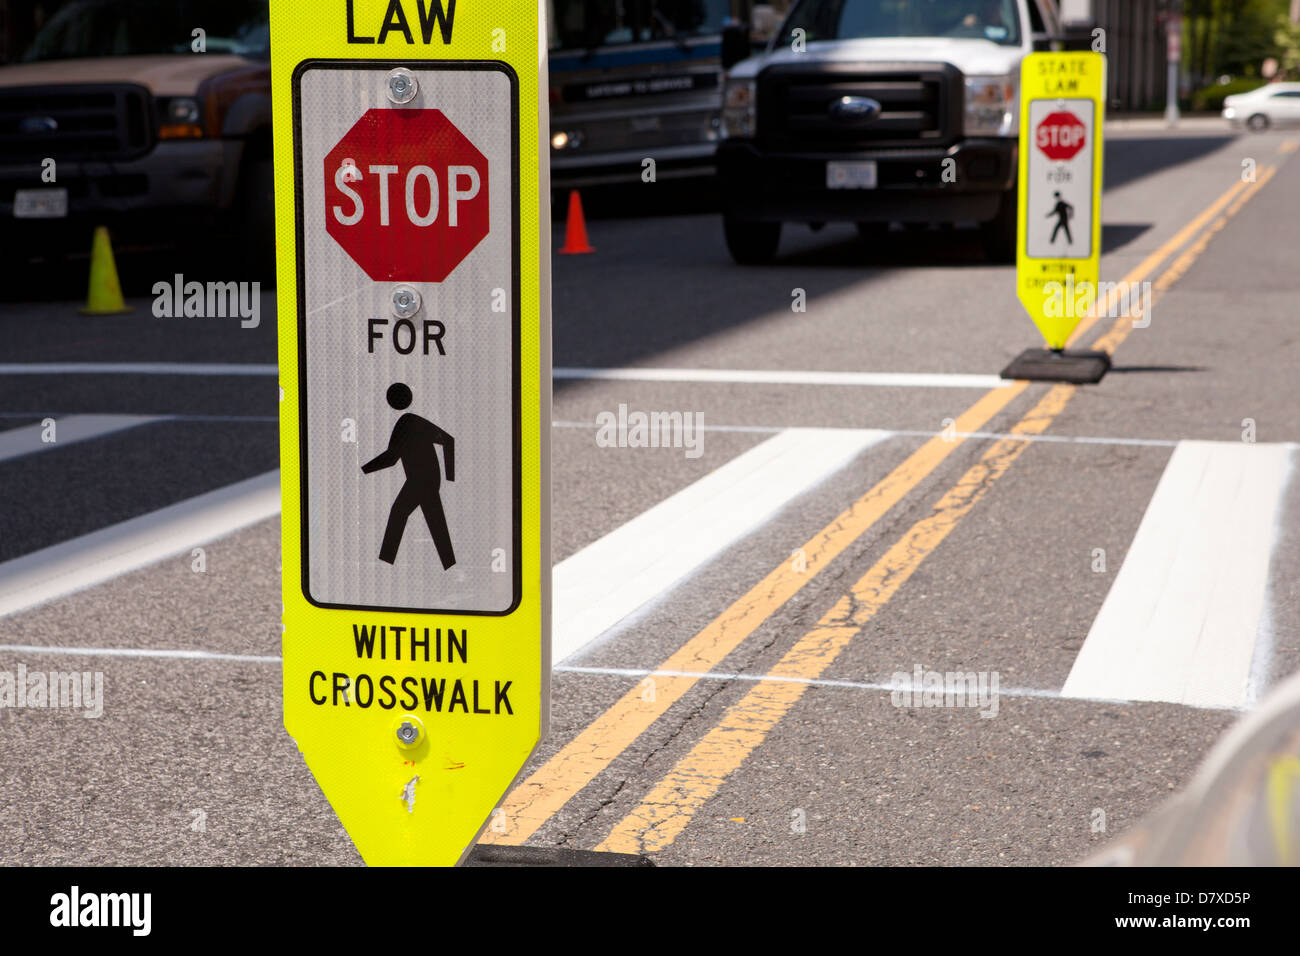 Stop for Pedestrian sign - Stock Image